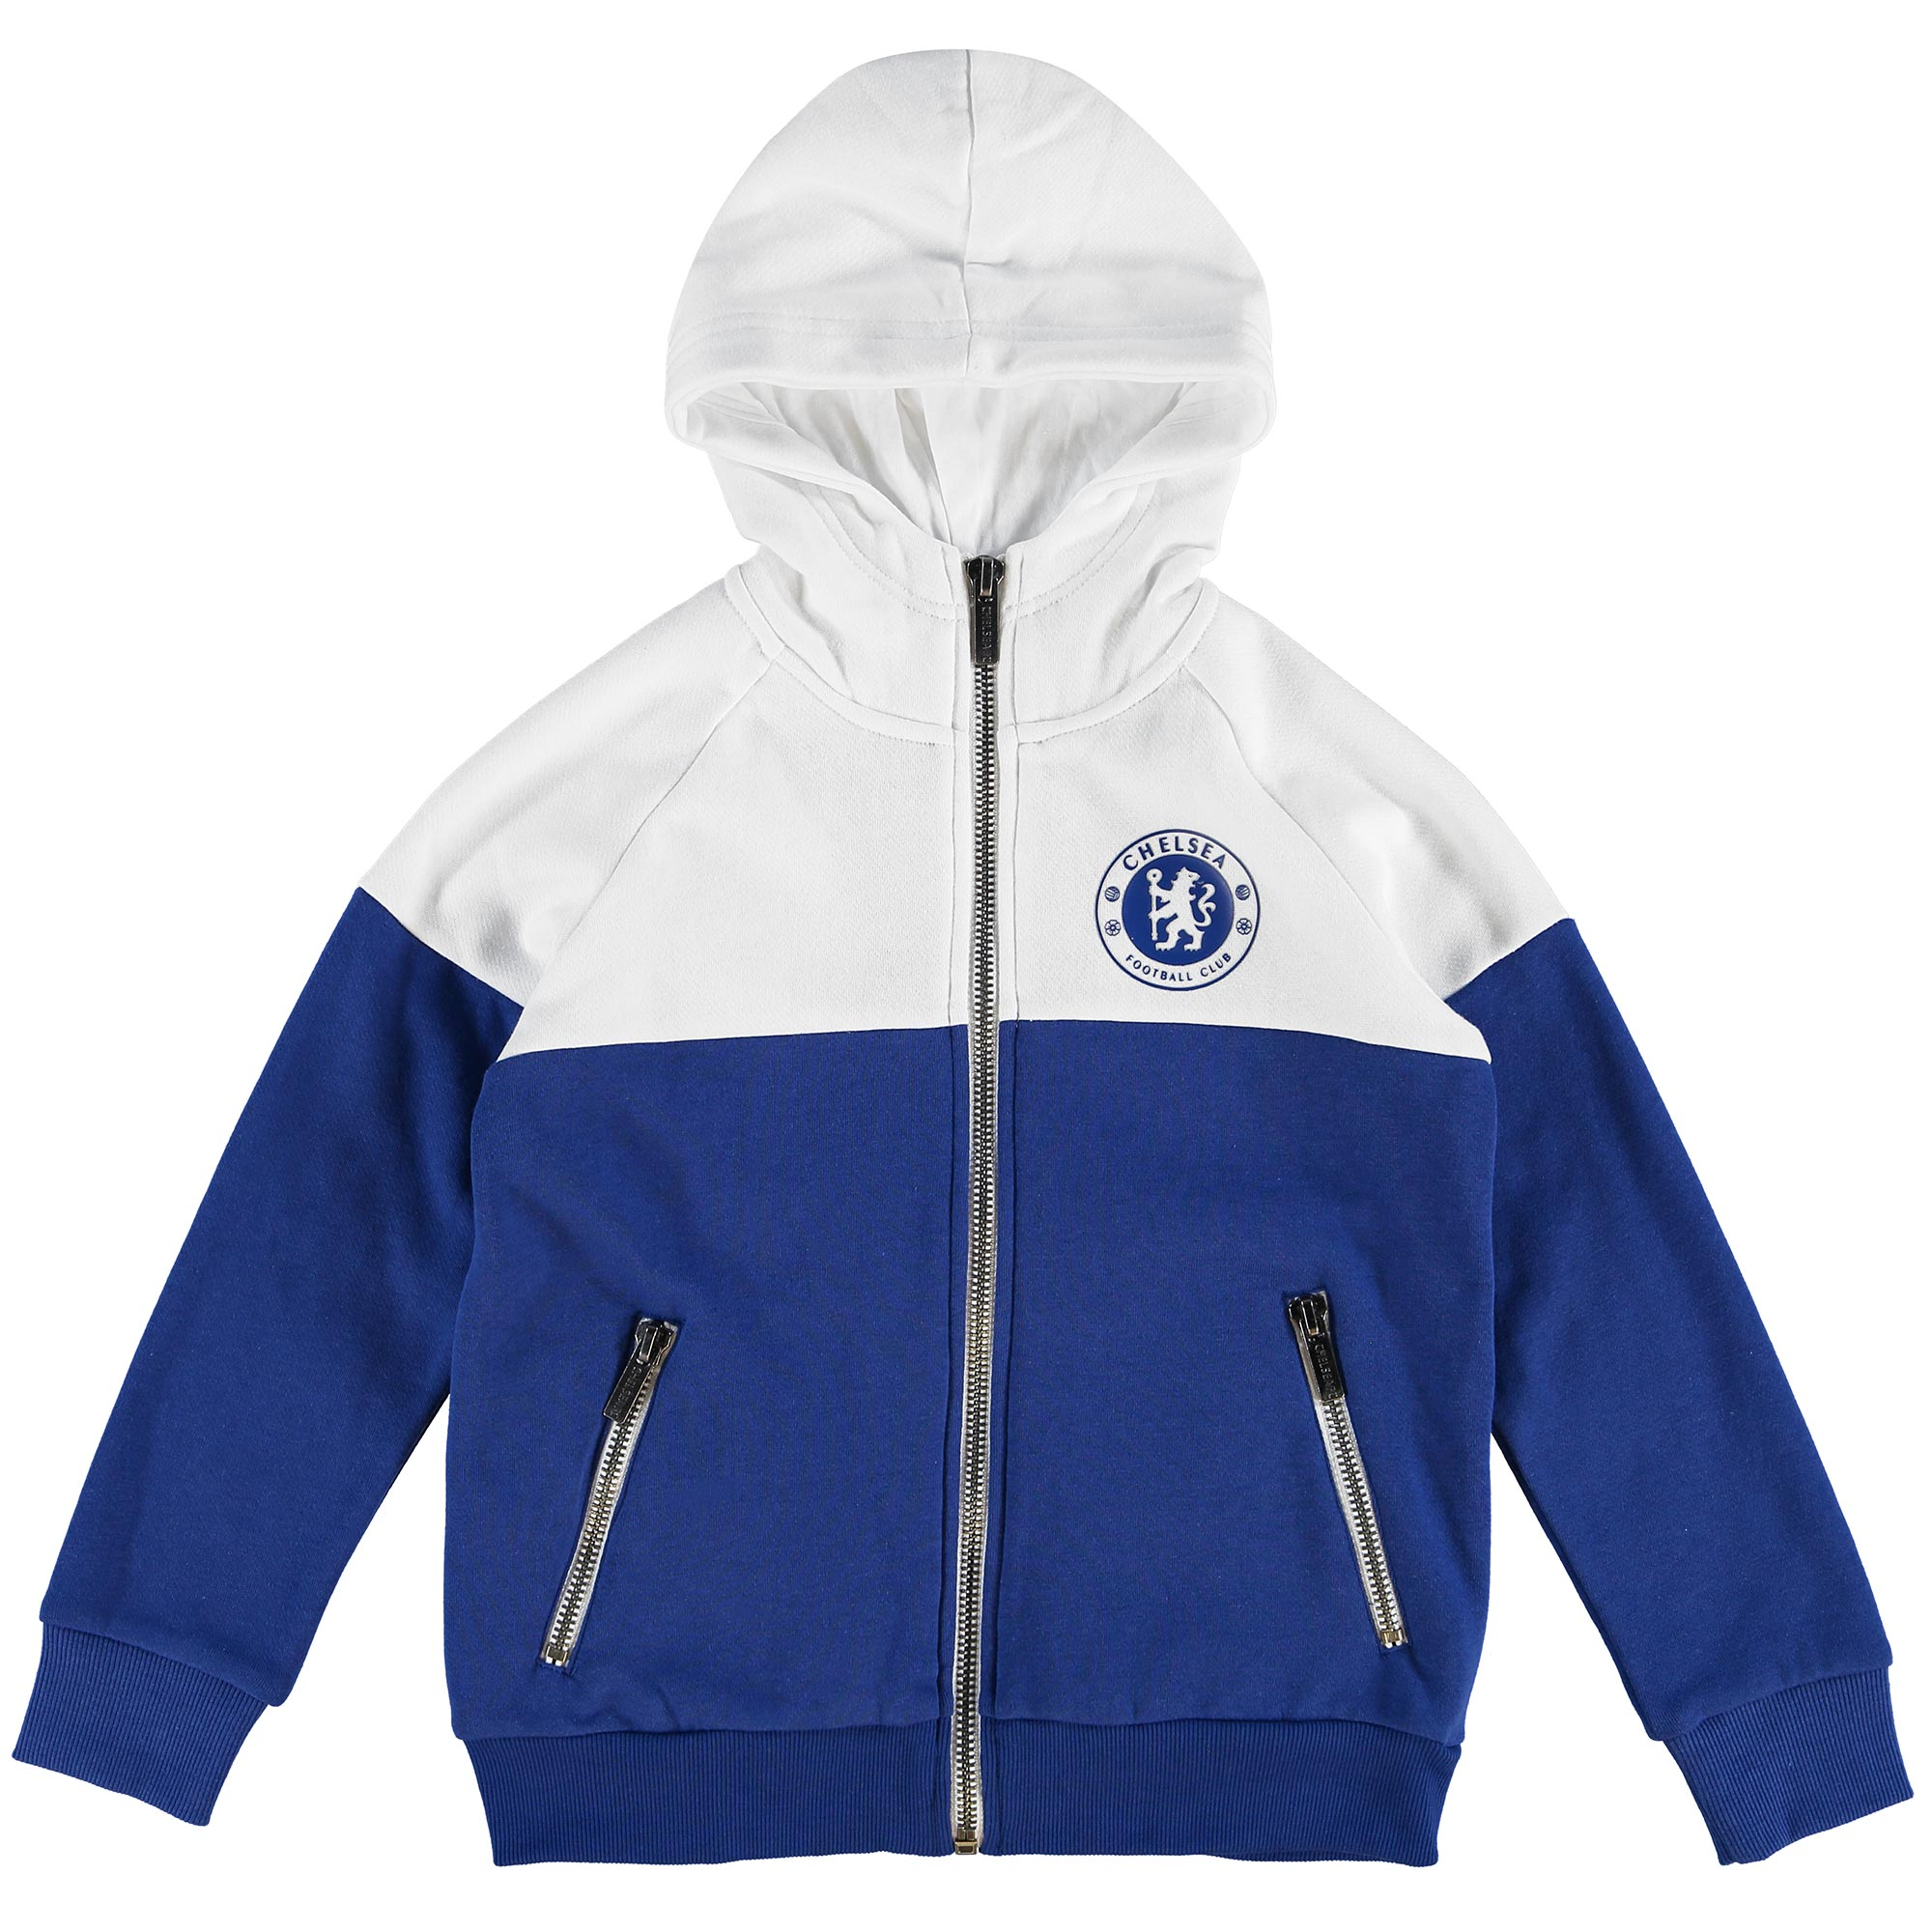 Chelsea Essential Full Zip Hoodie - Royal/White - Older Boys   Whether you're cheering on The Blues at Stamford Bridge or watching the game at home, this Chelsea Essential Full Zip Hoodie is the ideal thing to wear!   Featuring a raised rubber crest this full zip hoodie shows off your pride and will keep you warm as you watch the match.   Details: • Zip through hoody • Fabrication: 65% poly 35% cotton B/Back fleece 280gms • Application: Raised rubber crest, branded zip pulls x 3 • Metal zip with white zip tape